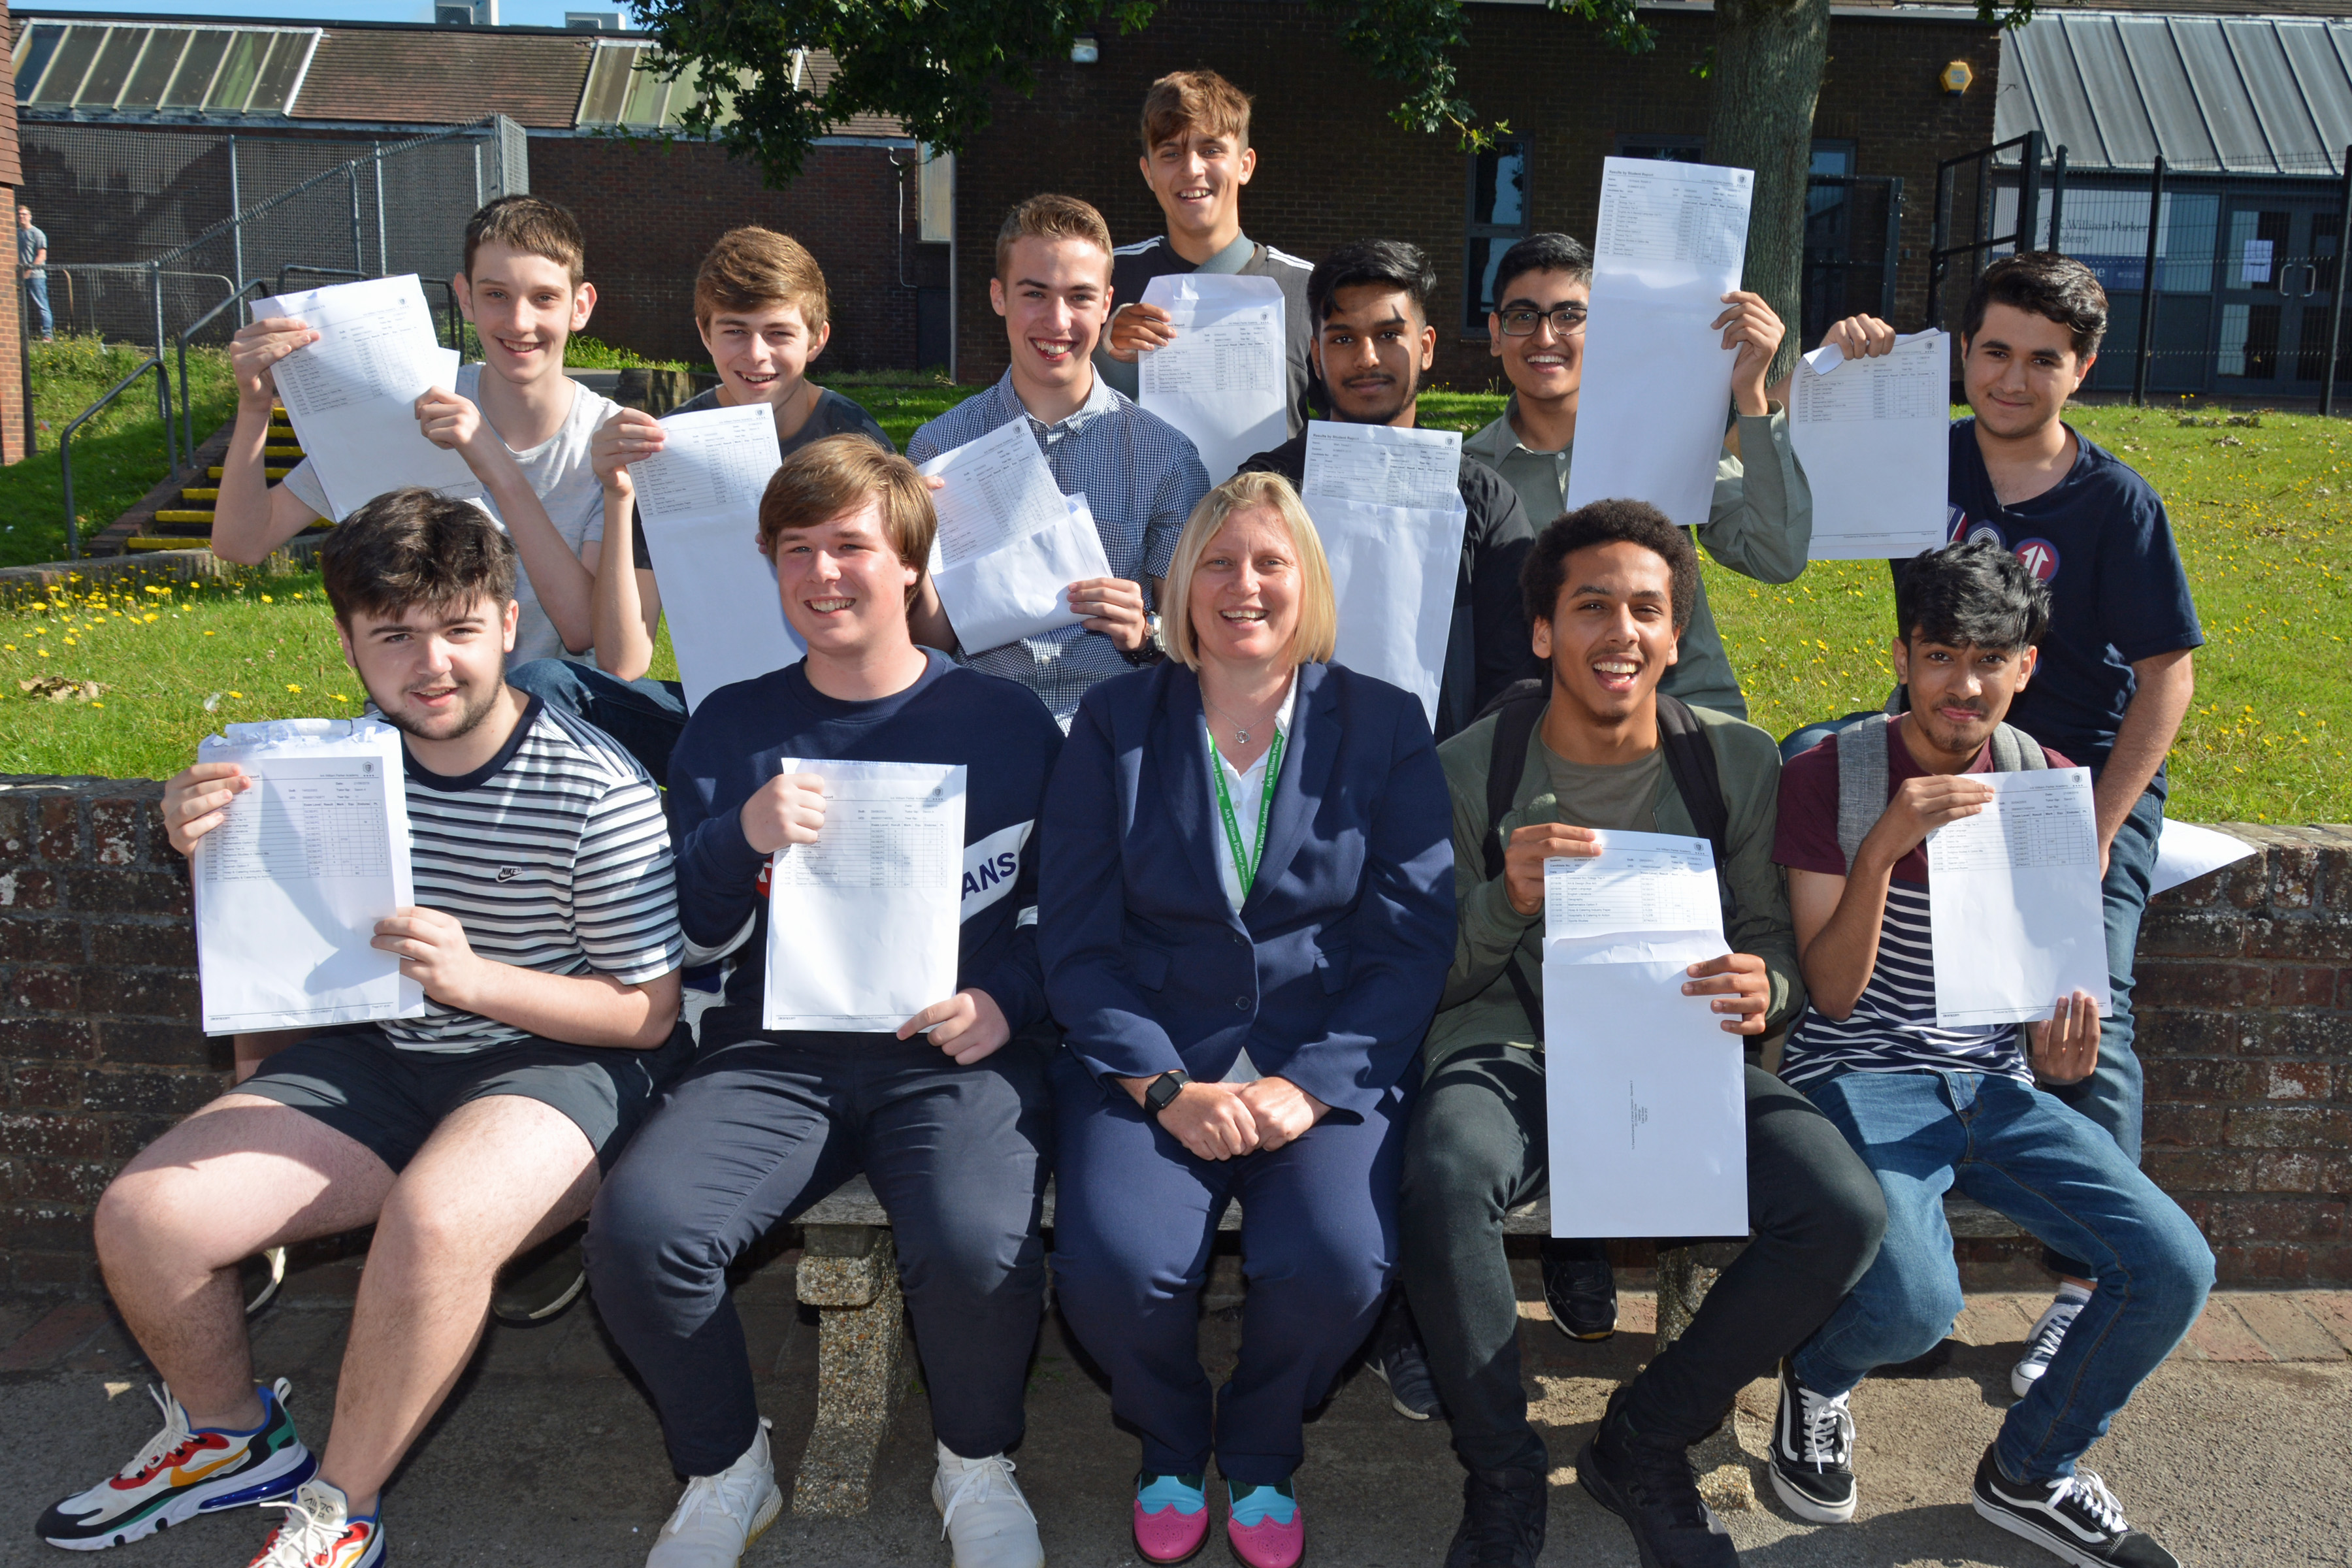 Celebrating exam success – great crop of GCSE results for local schools